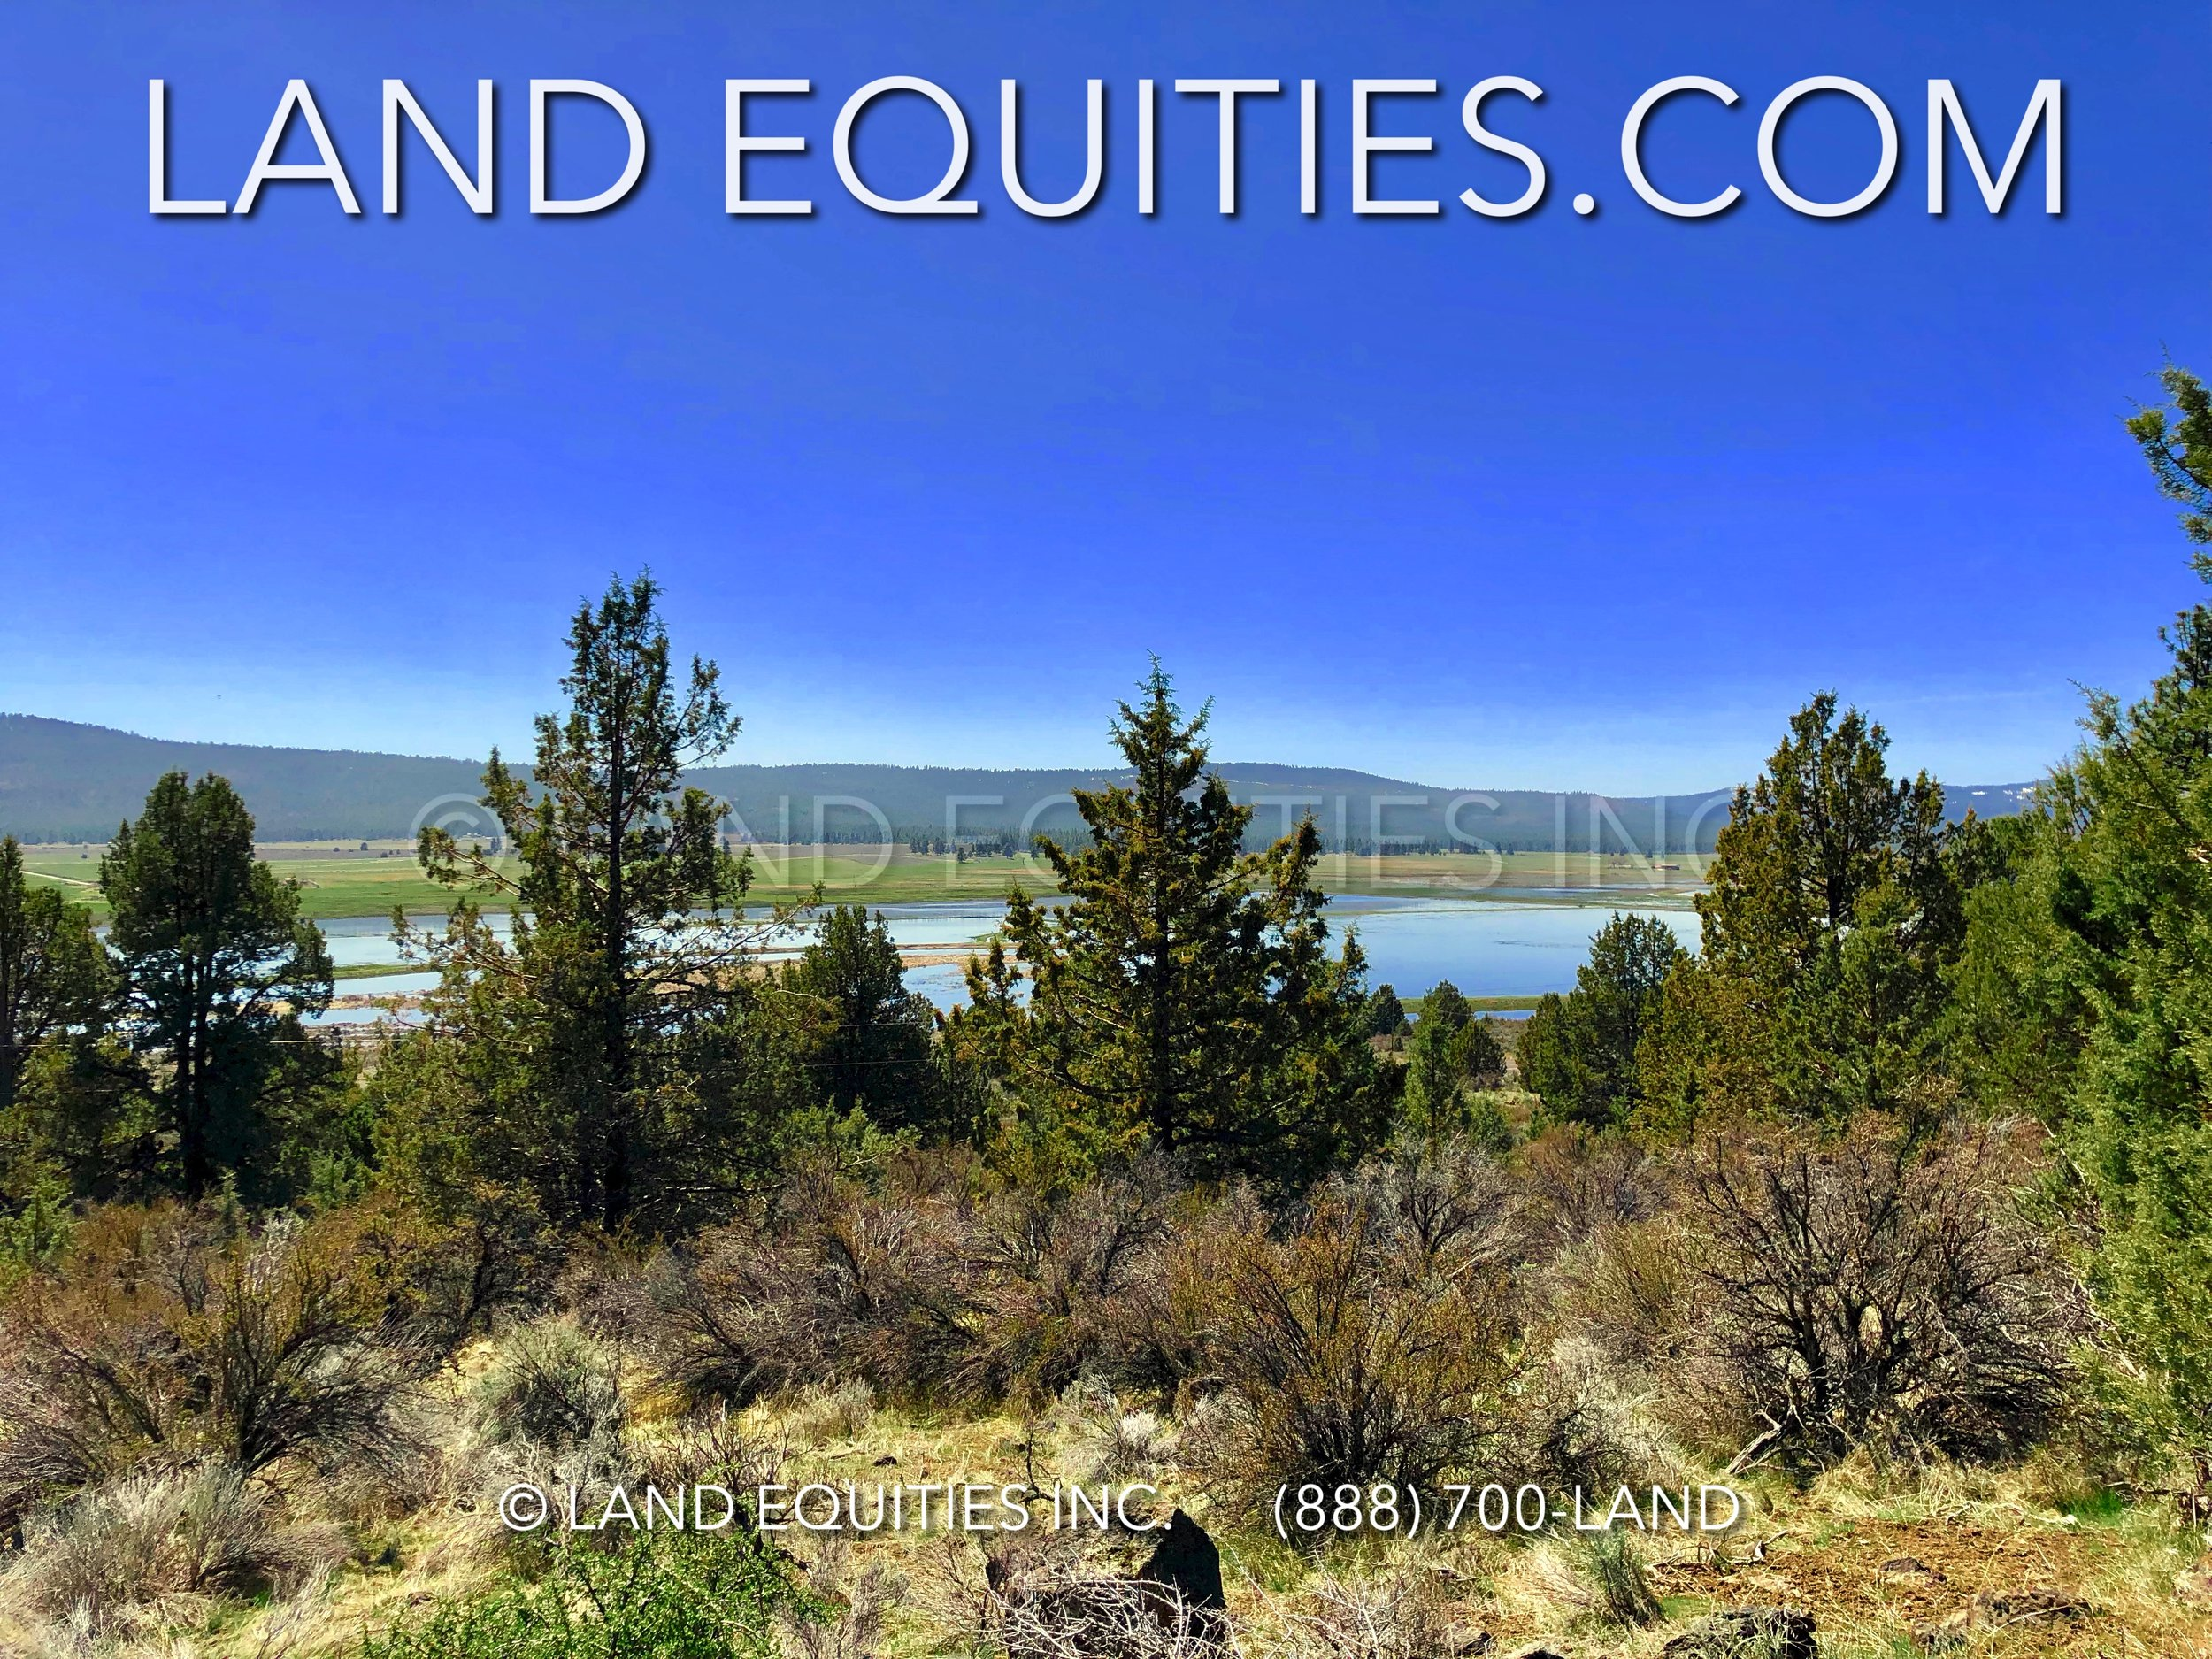 LAND EQUITIES — 1 46 ACRES WITH GORGEOUS SPRAGUE RIVER VIEWS! (LOT #12)  KOOTENAI ST  CHILOQUIN, OR